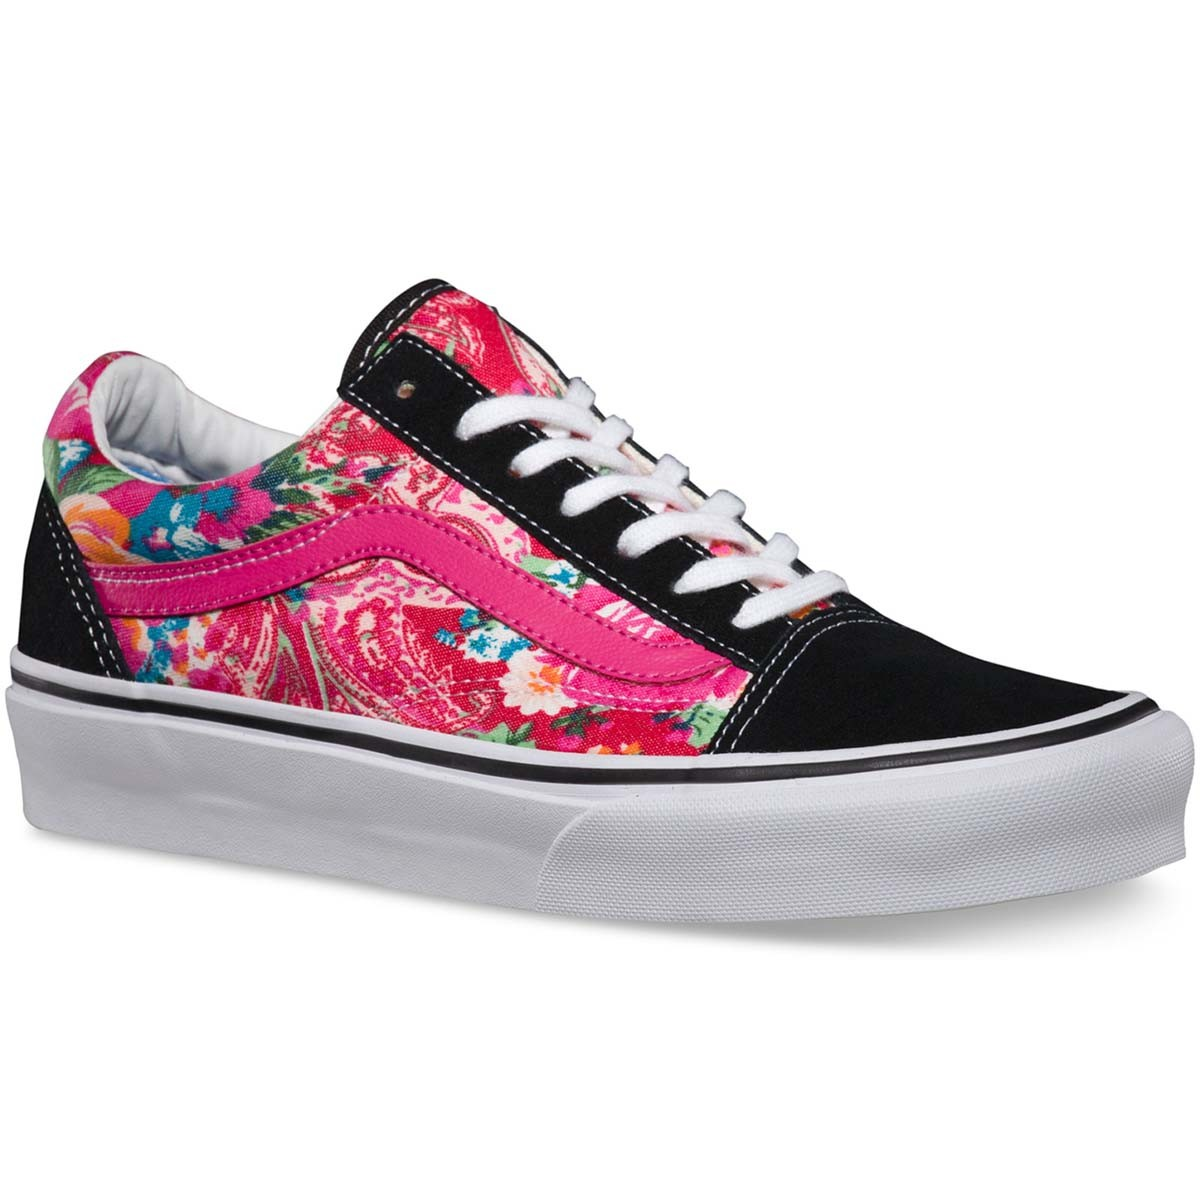 Vans multi floral old skool core classics shoes for Old skool house classics